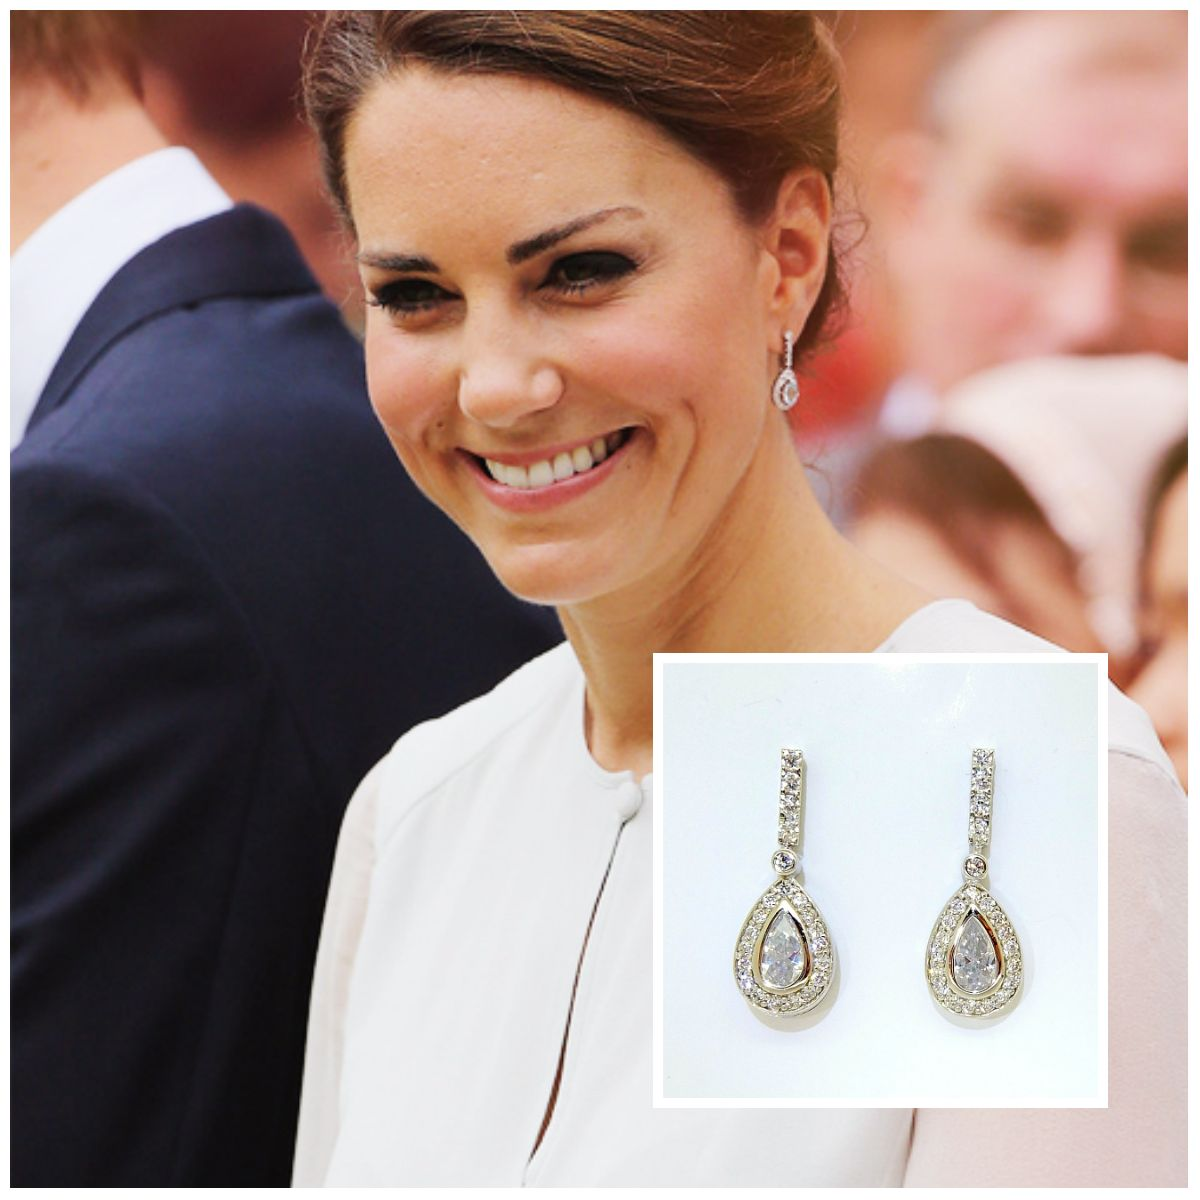 Yes To These Earrings! Updo Hairstylehairstyleskate Middleton